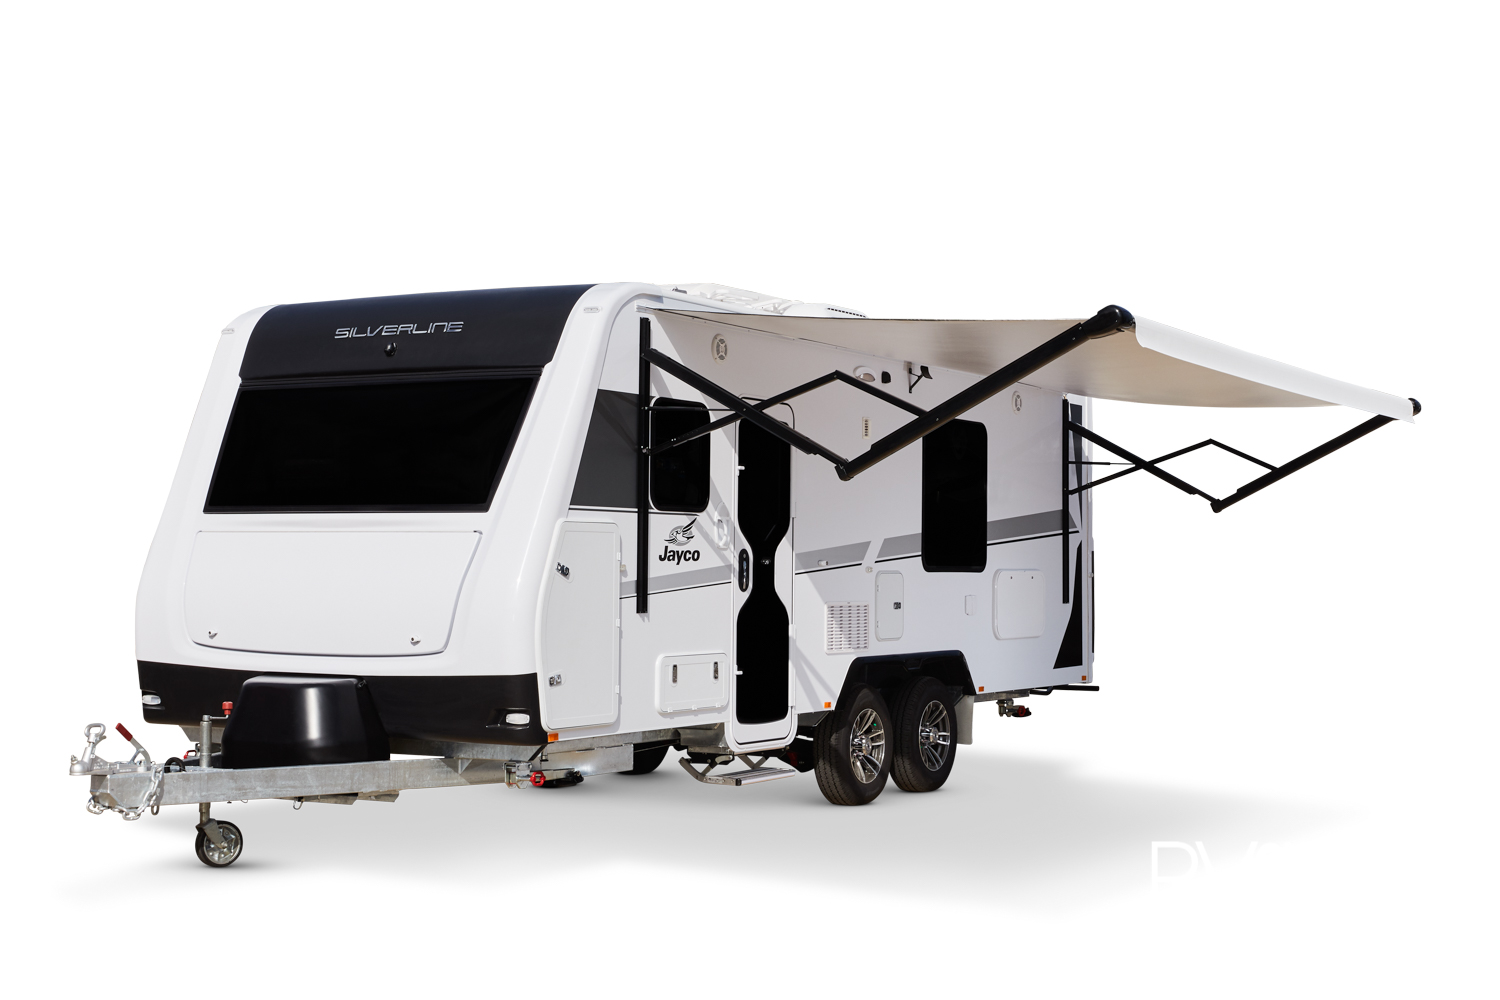 A long awning is electric and even has an App that can be blue toothed to operate it. Stablisers underneath all around, bumper bar at the rear. The entertainment locker is in the rear quarter, other lockers along the side and in the front nose